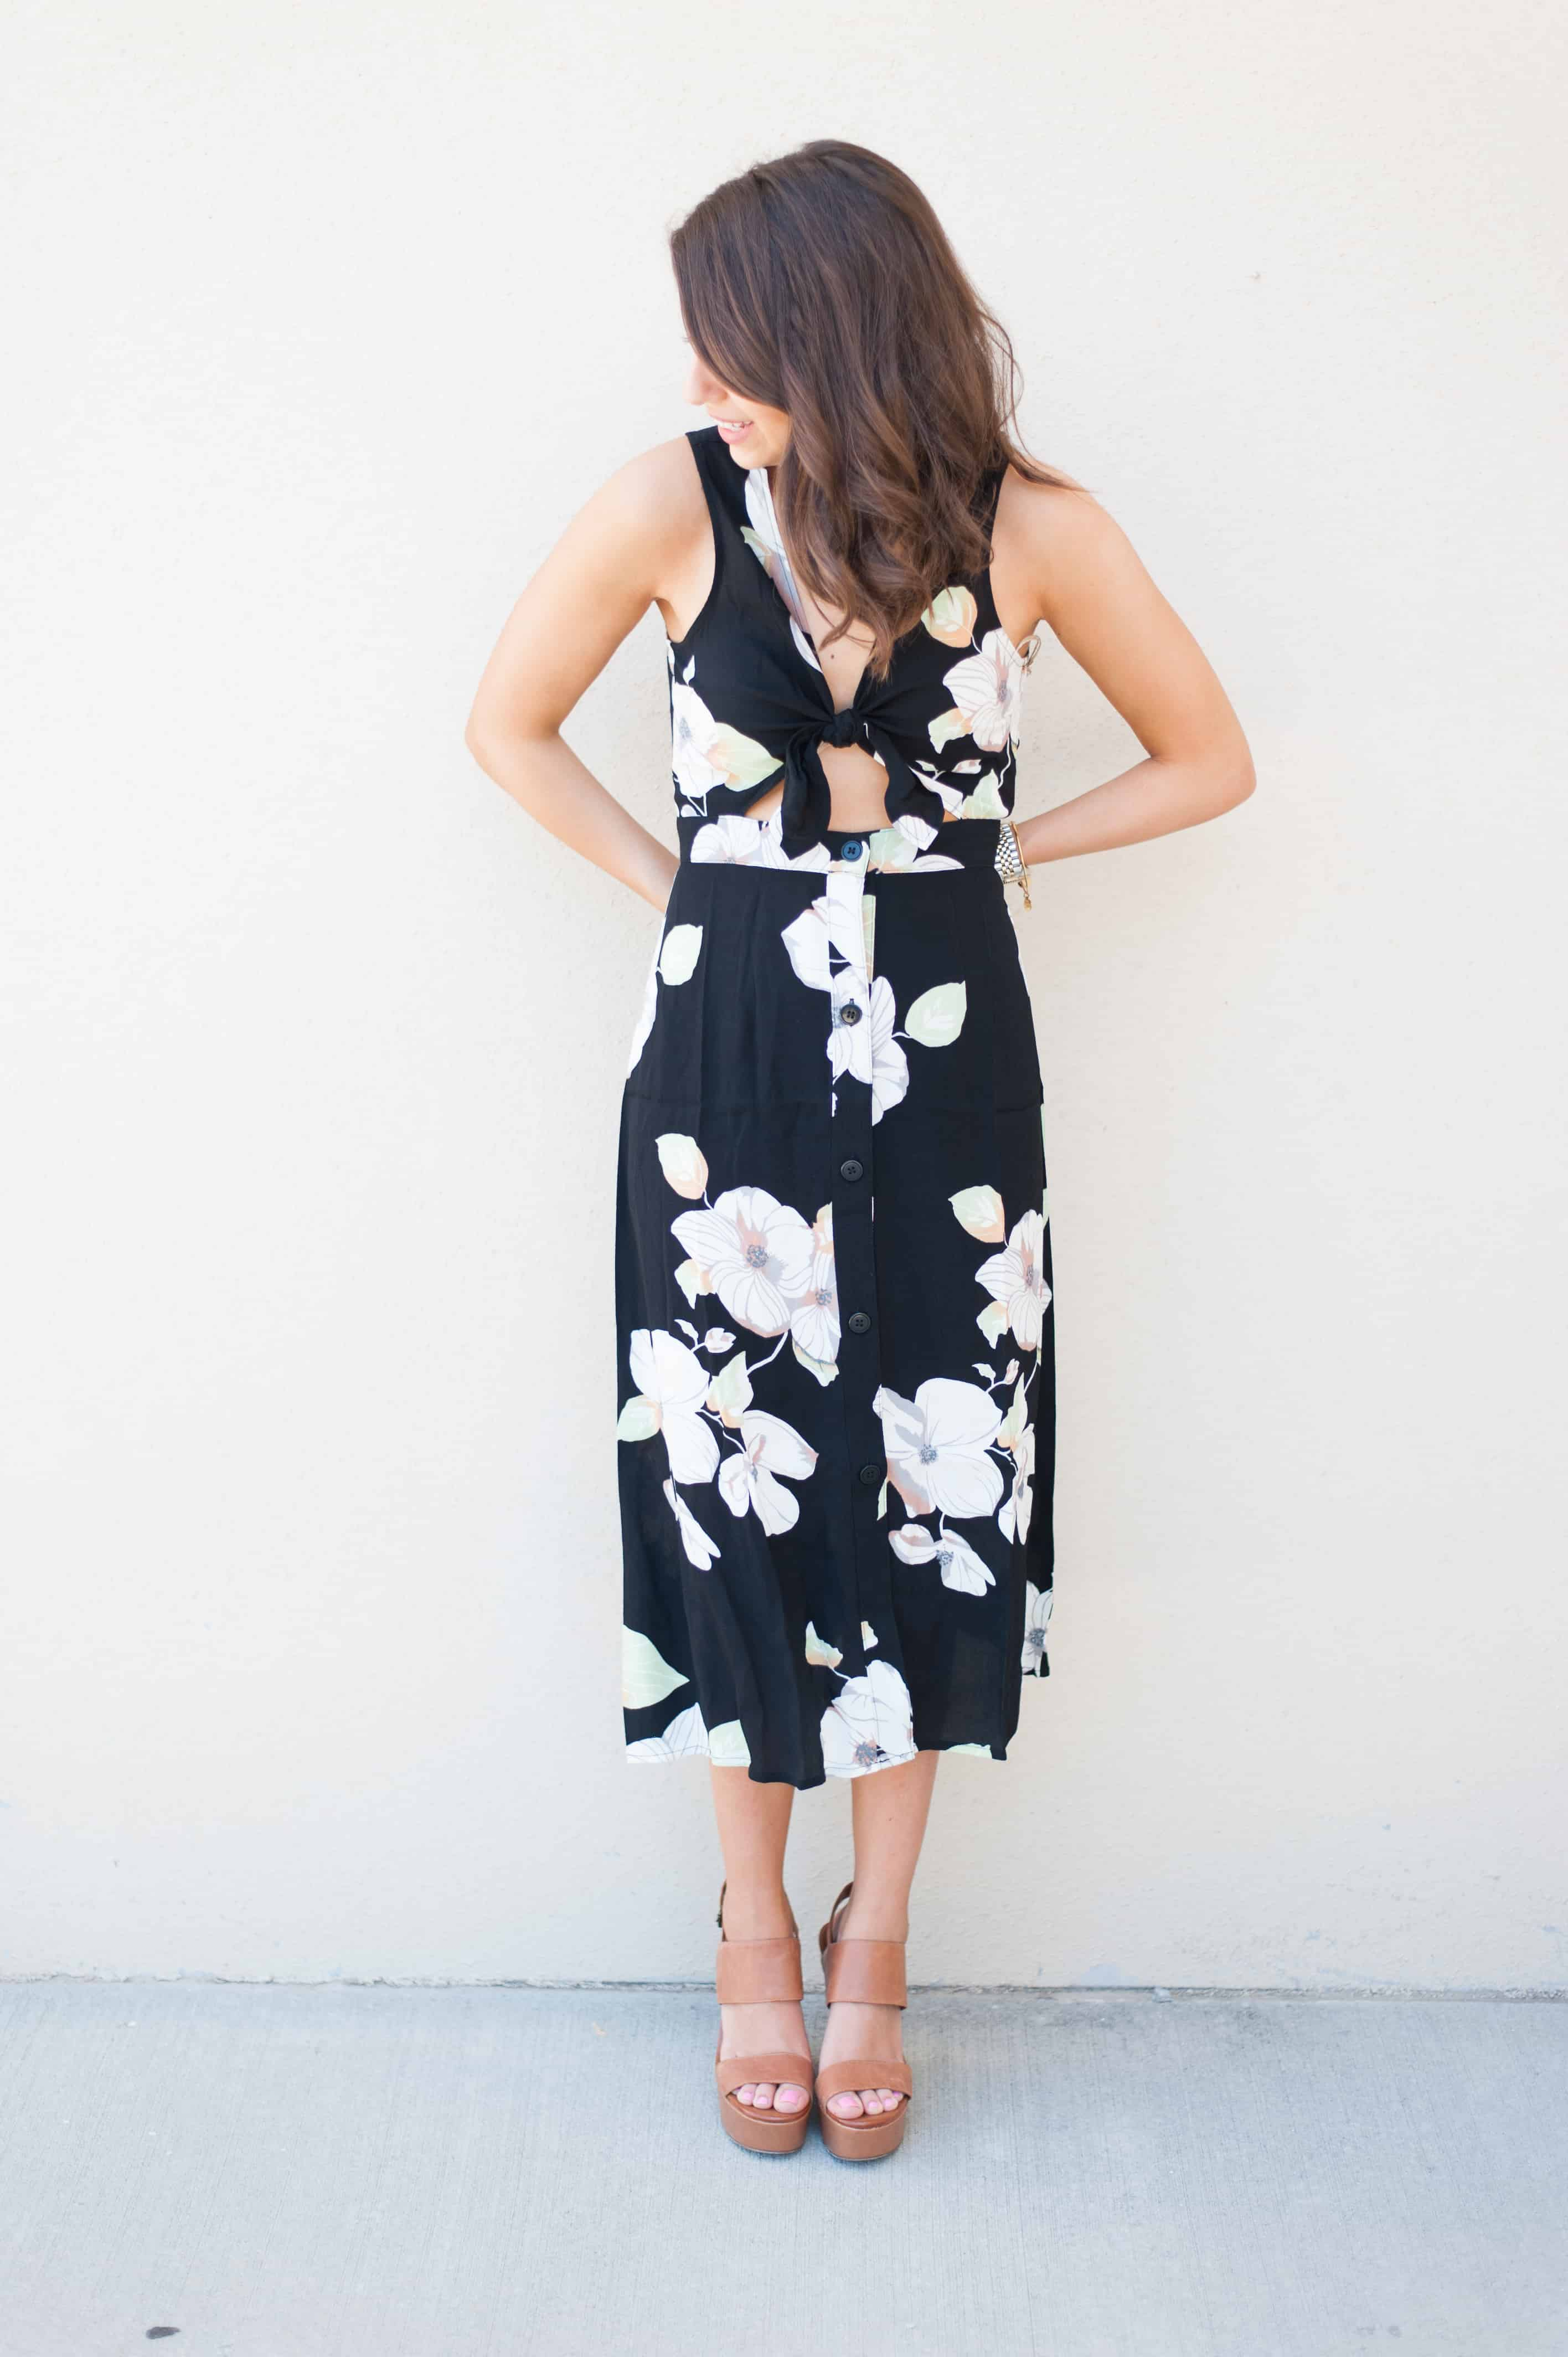 Dress Up Buttercup // A Houston-based fashion and inspiration blog developed to daily inspire your own personal style by Dede Raad   Floral Tie Front